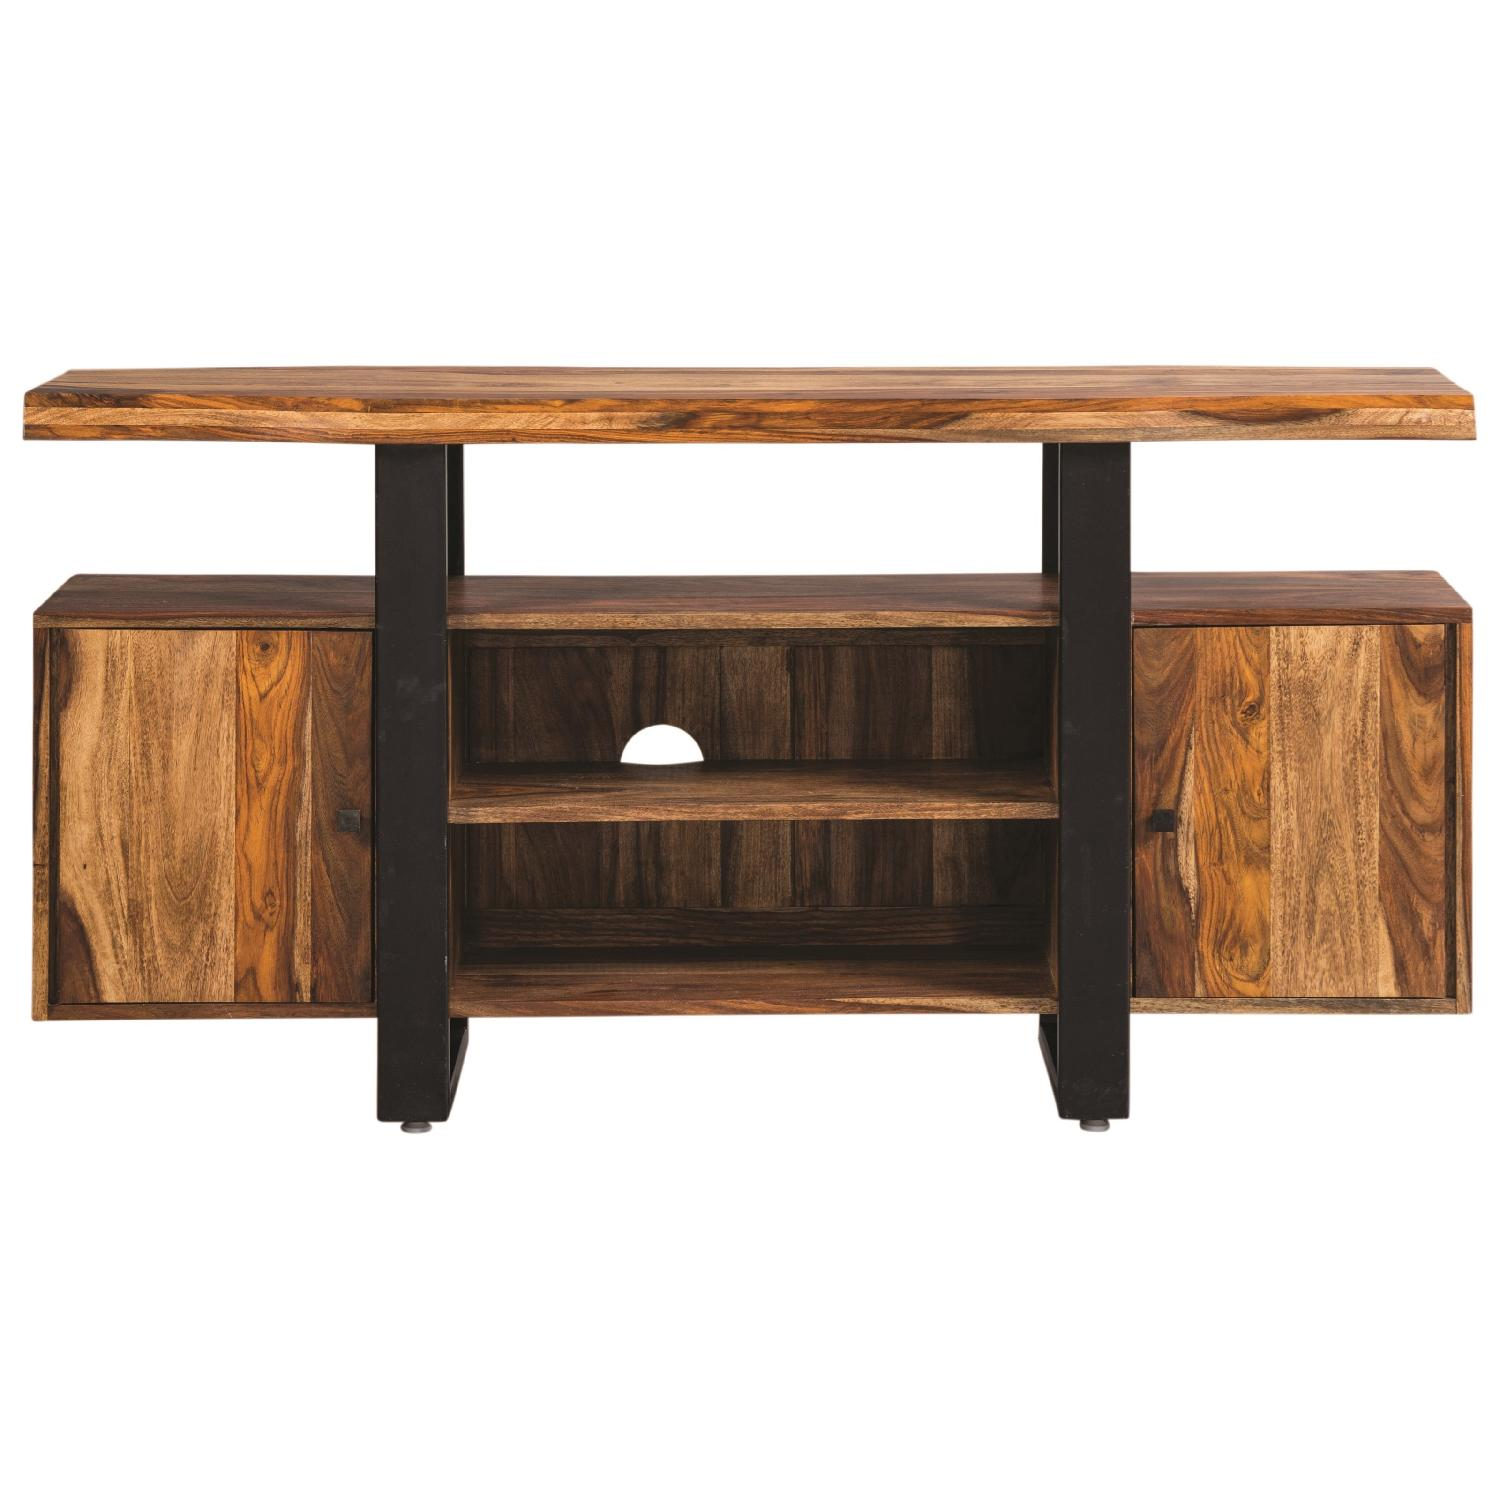 Modern TV Stand w/ Solid Wood Top & Black Metal Accent